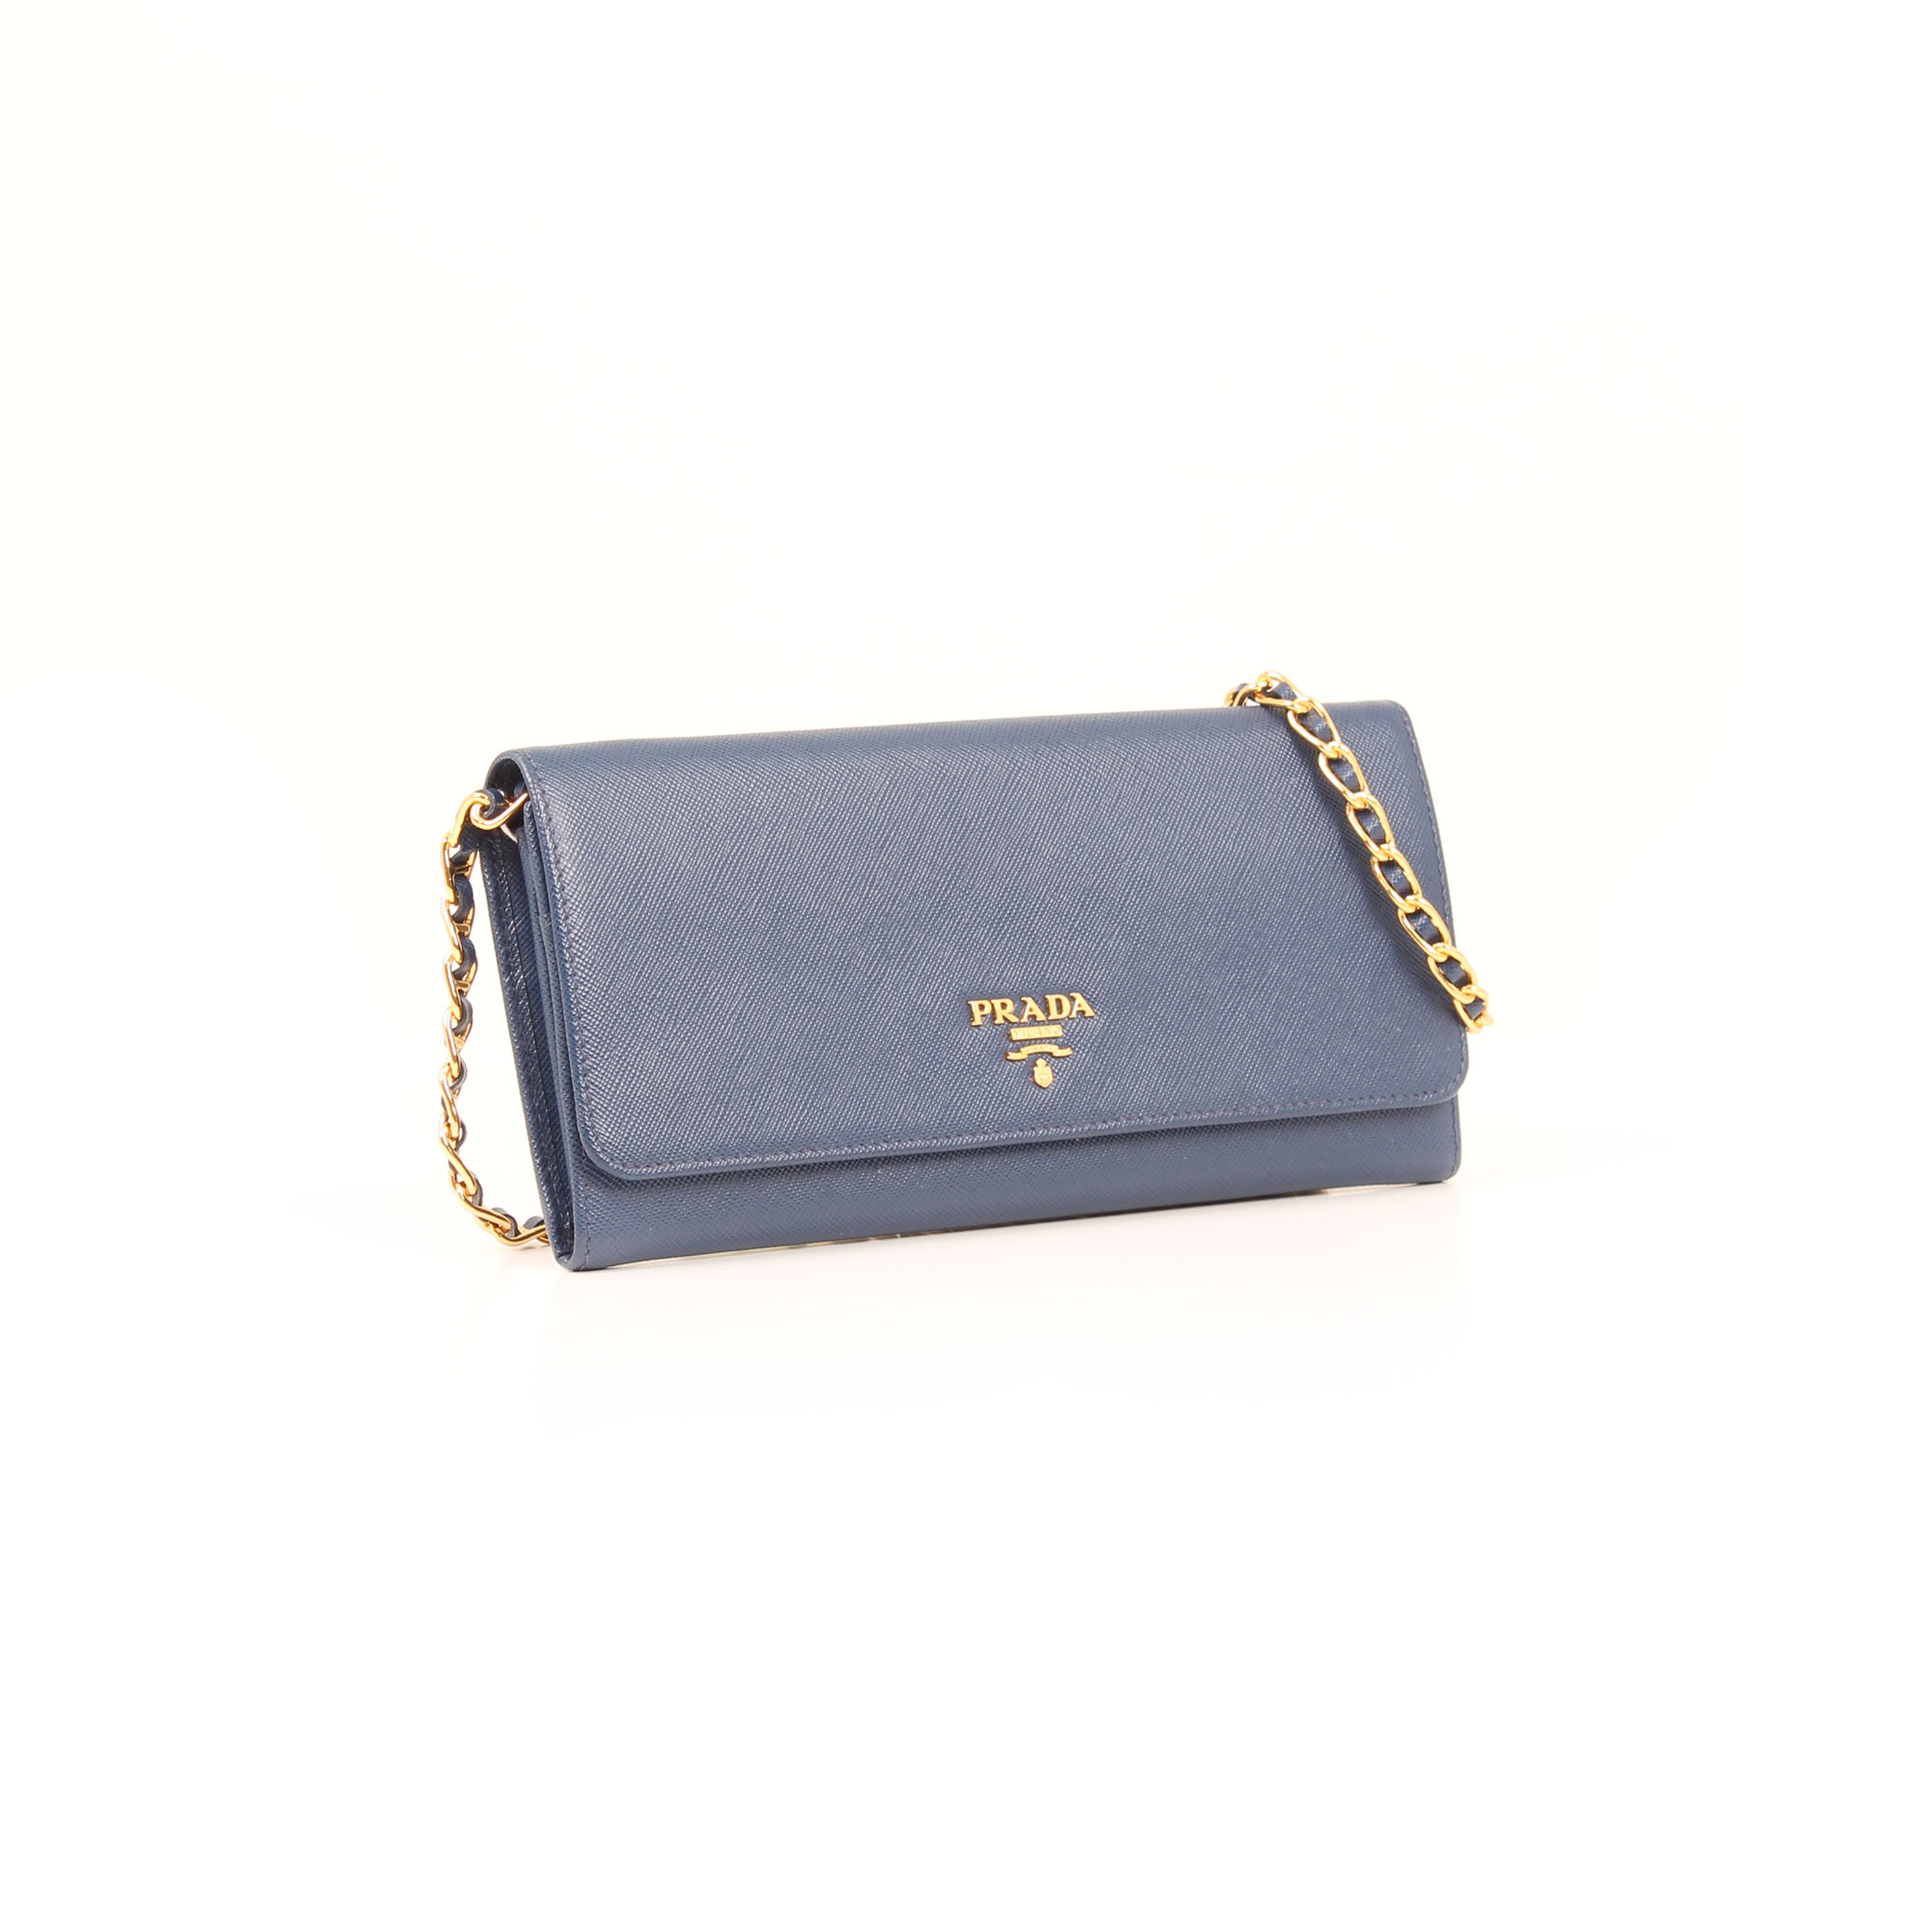 1528c94af25f Prada Wallet on Chain Bag Saffiano Metal Leather Bluette I CBL Bags